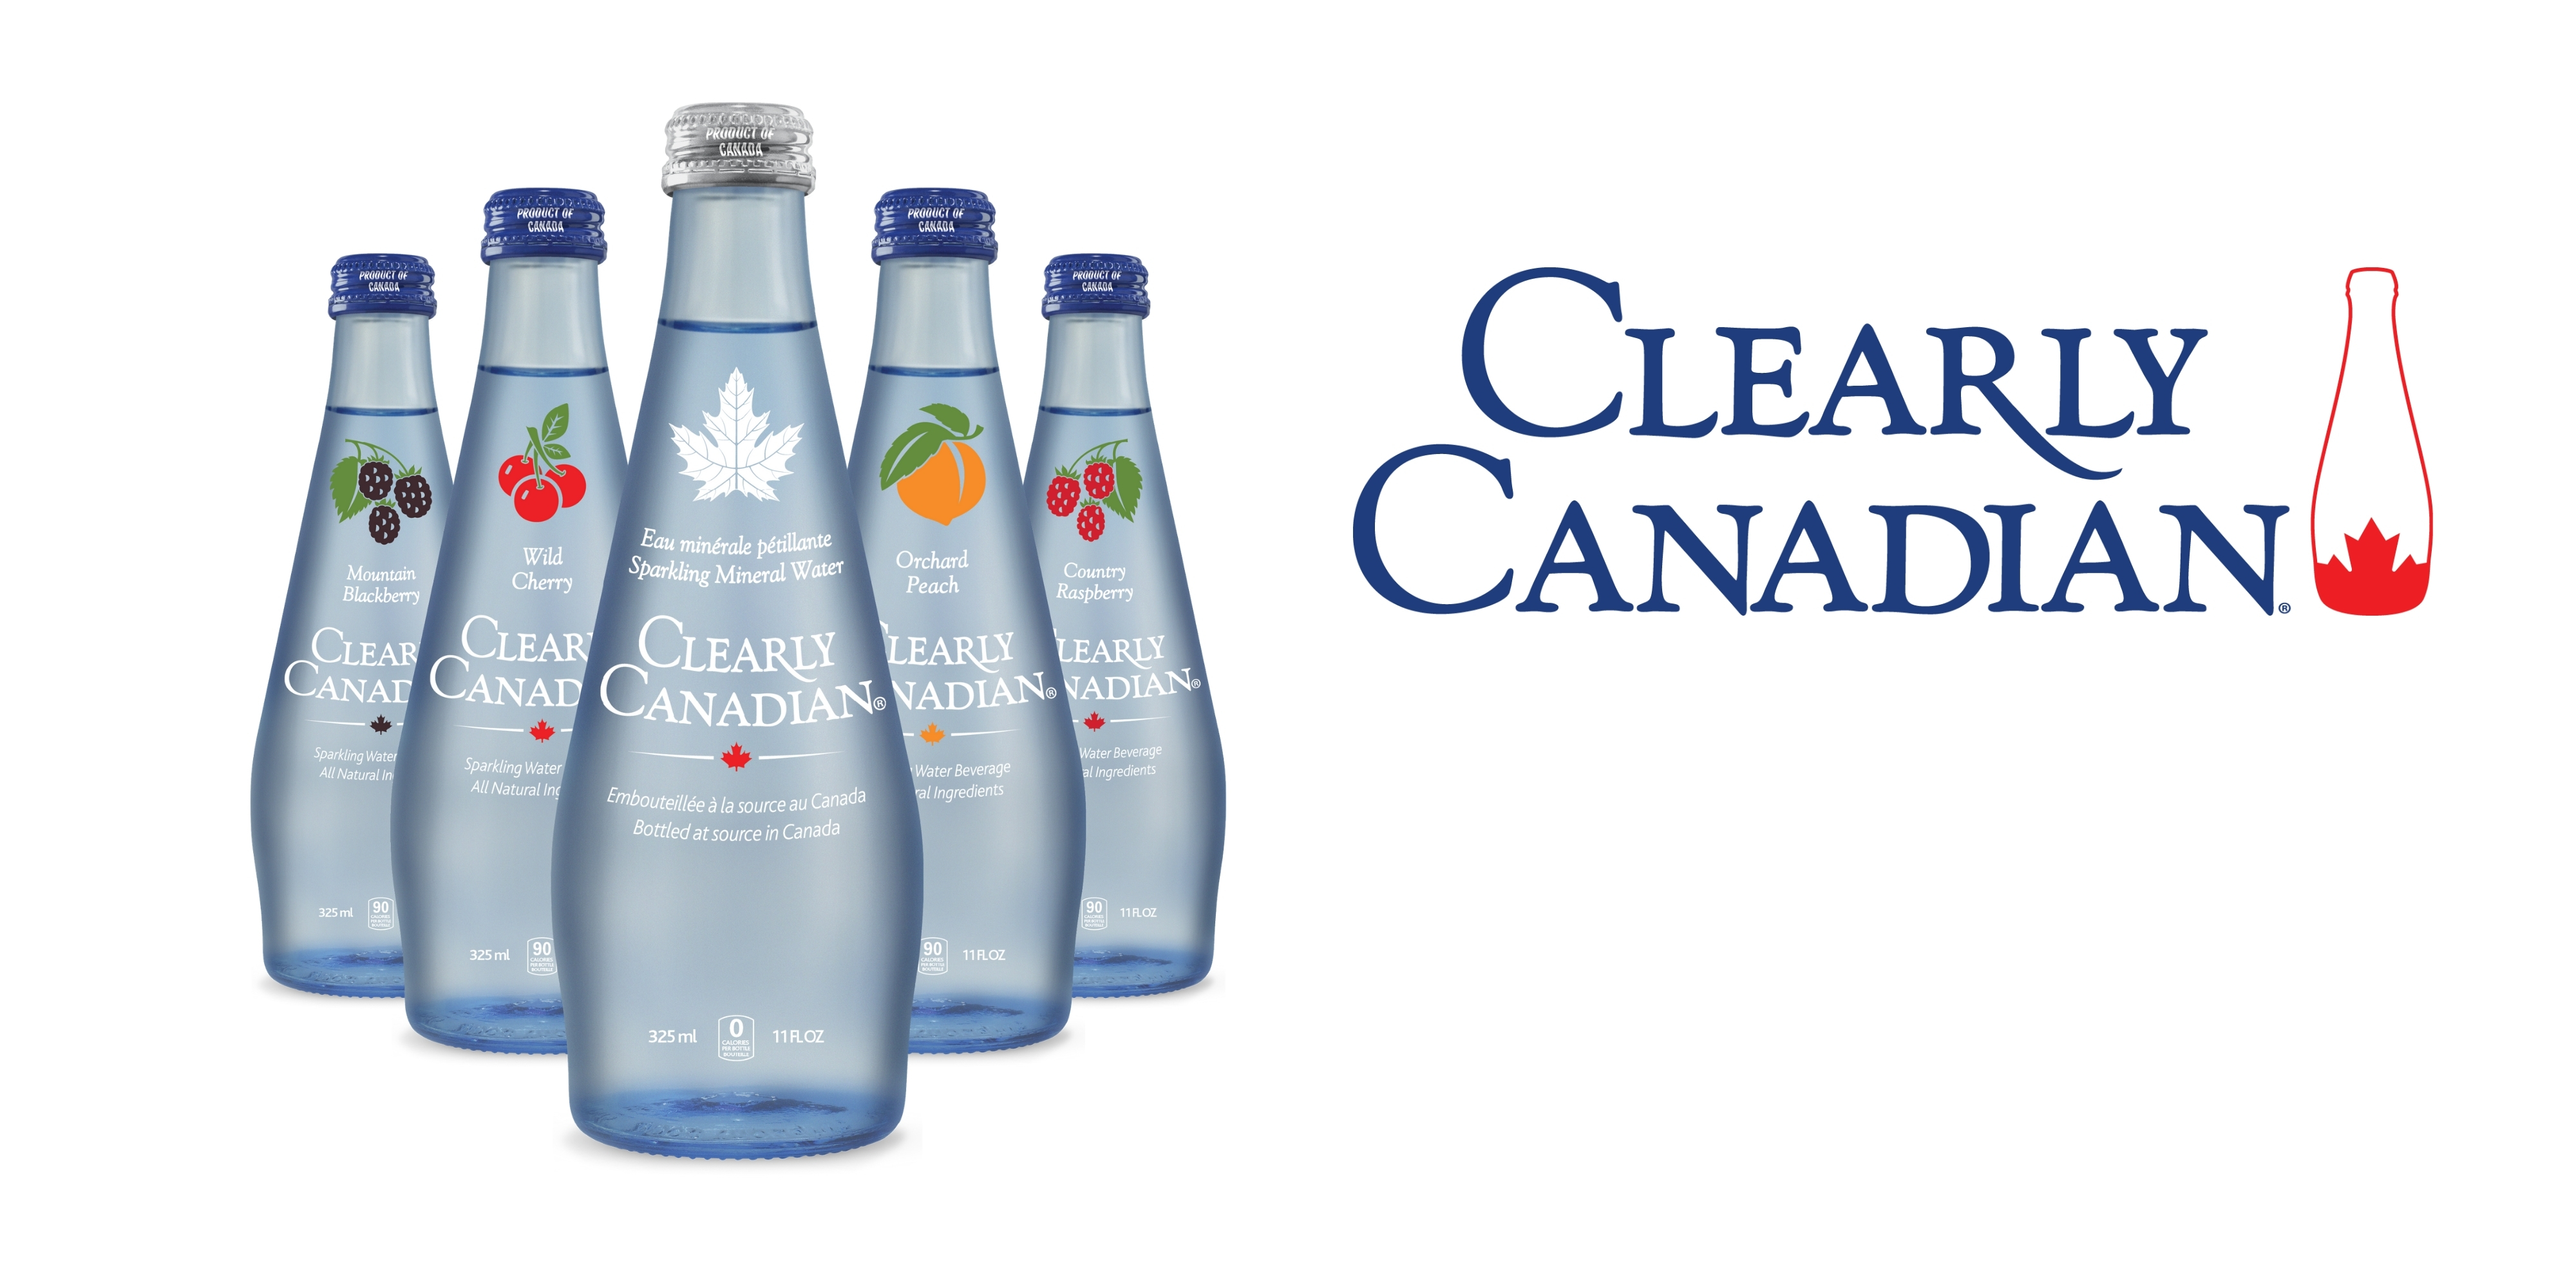 Clearly Canadian Turnaround Surpasses 20 Million Bottles Shipped